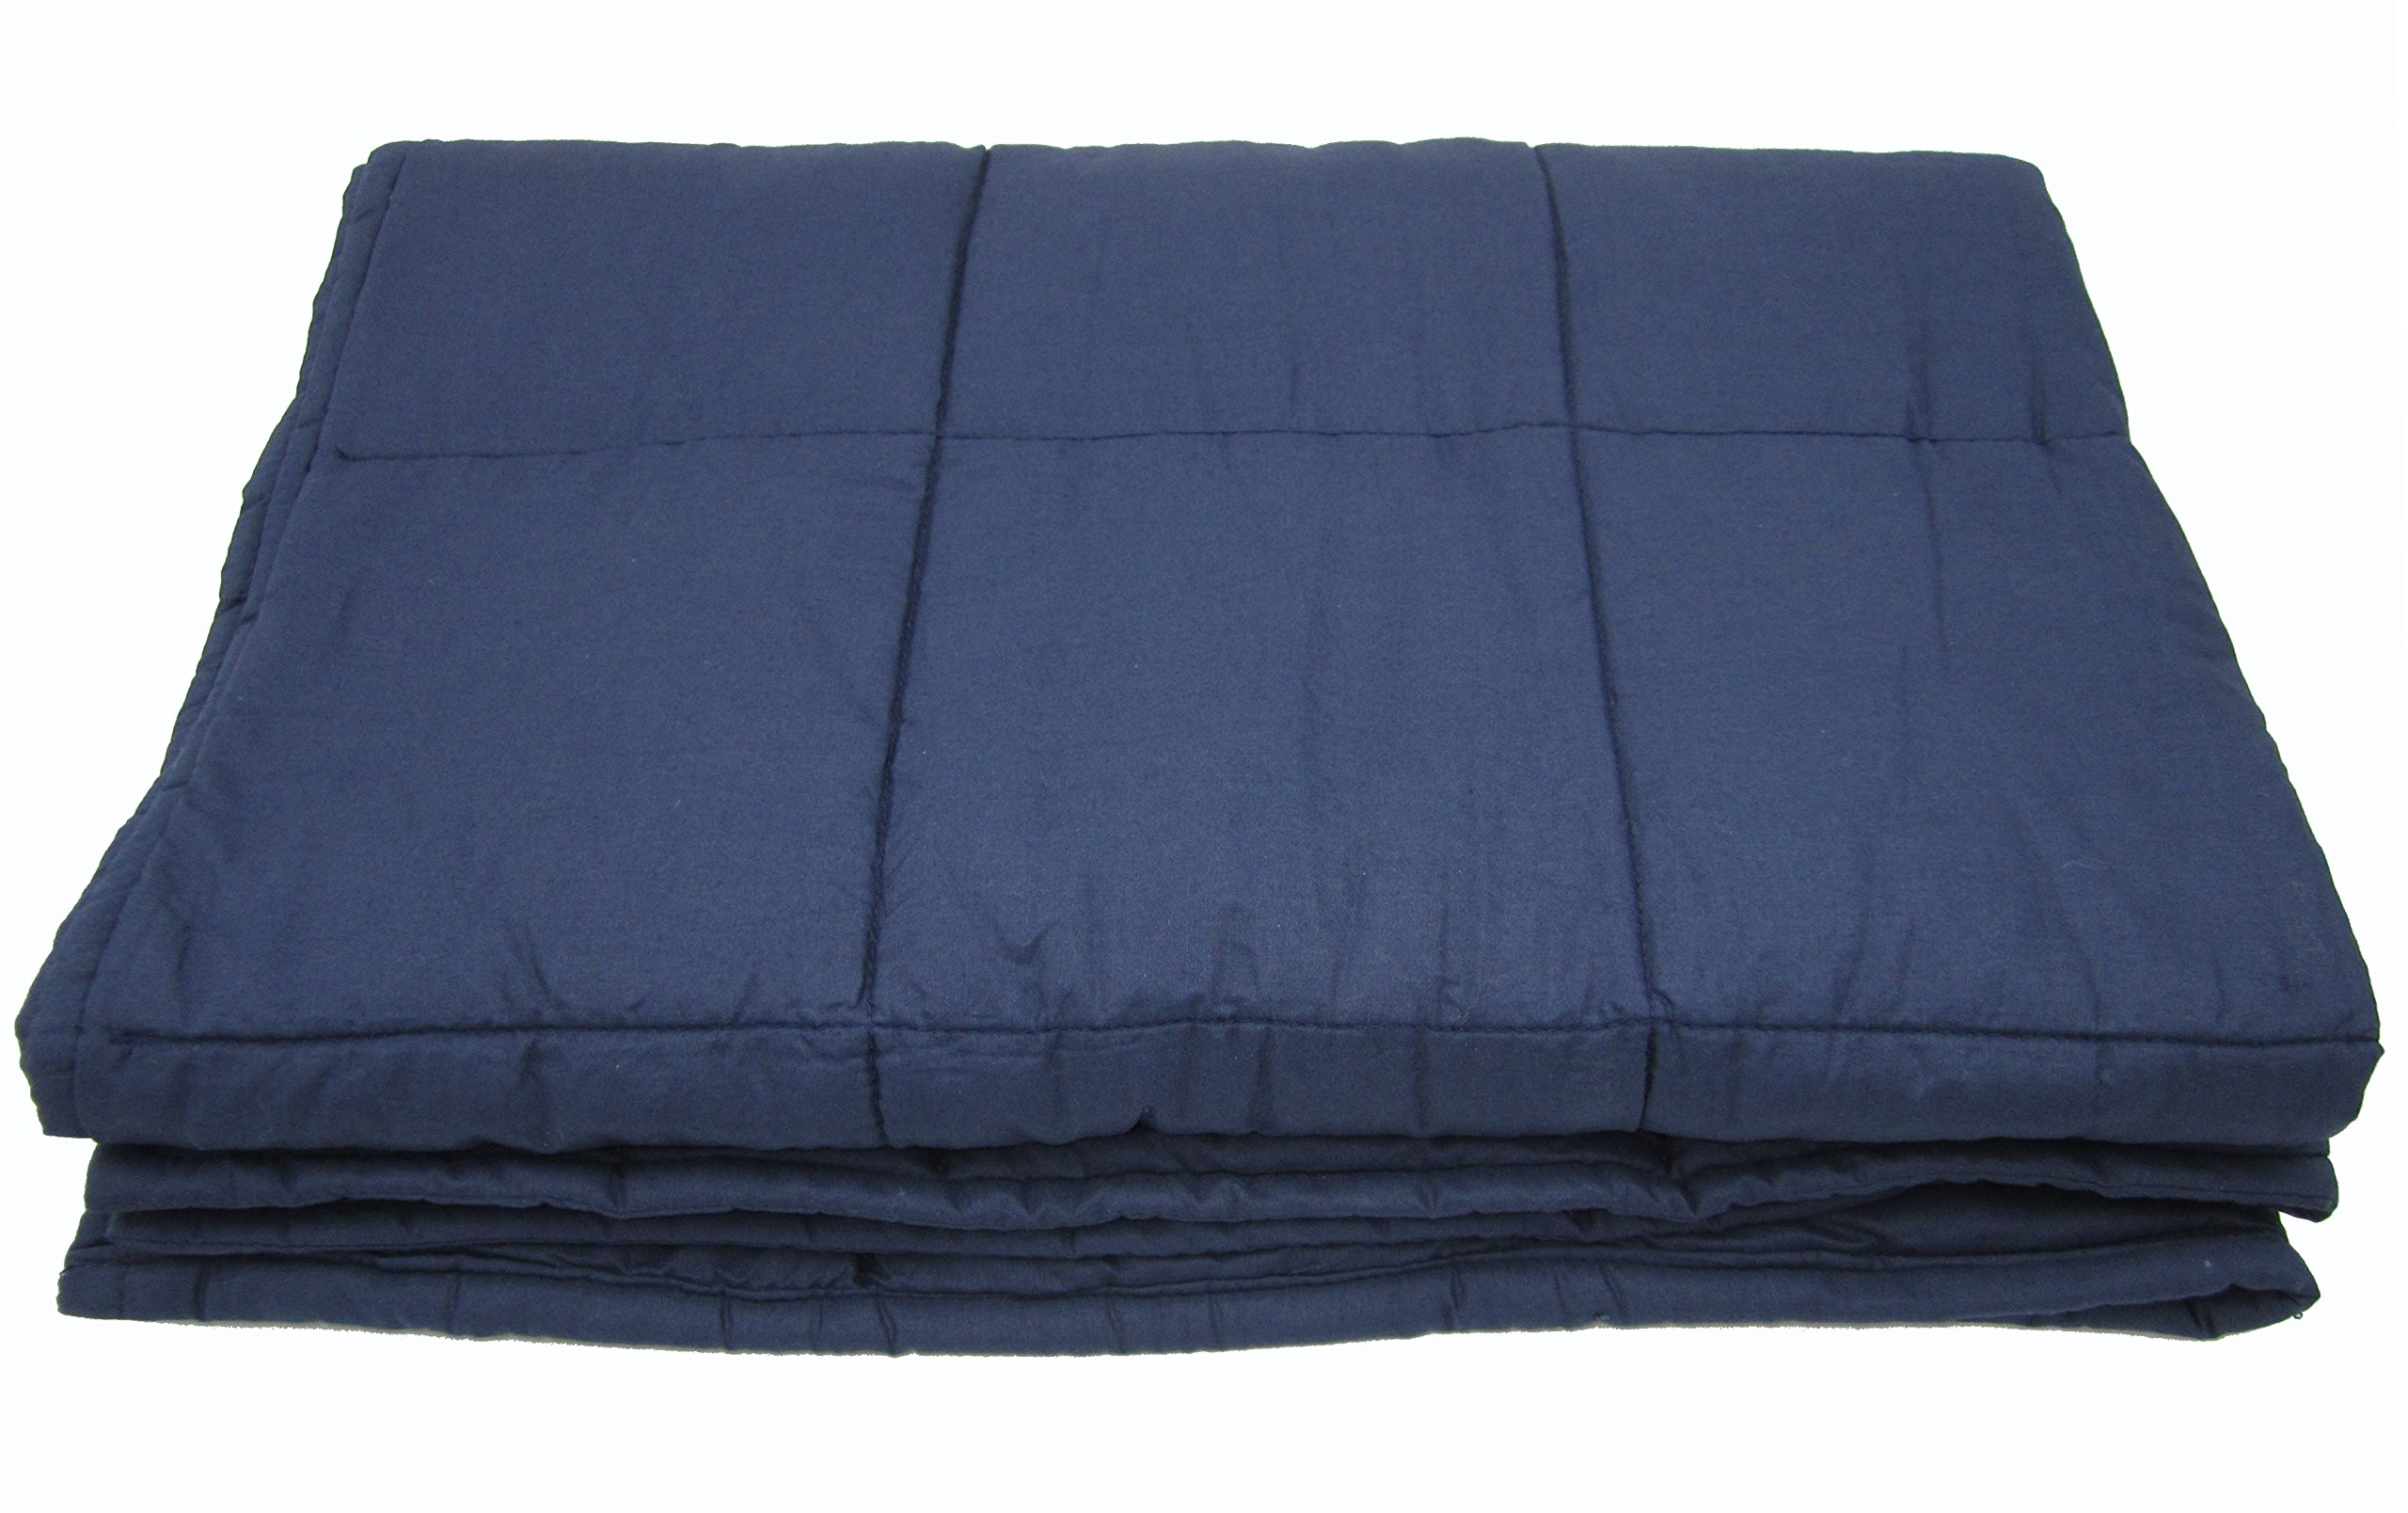 Weighted Blanket for Adults, 10lb, Cotton, Stress and Anxiety Relief, Helps Calm AAD, ADHD, Autism By Jade Silk